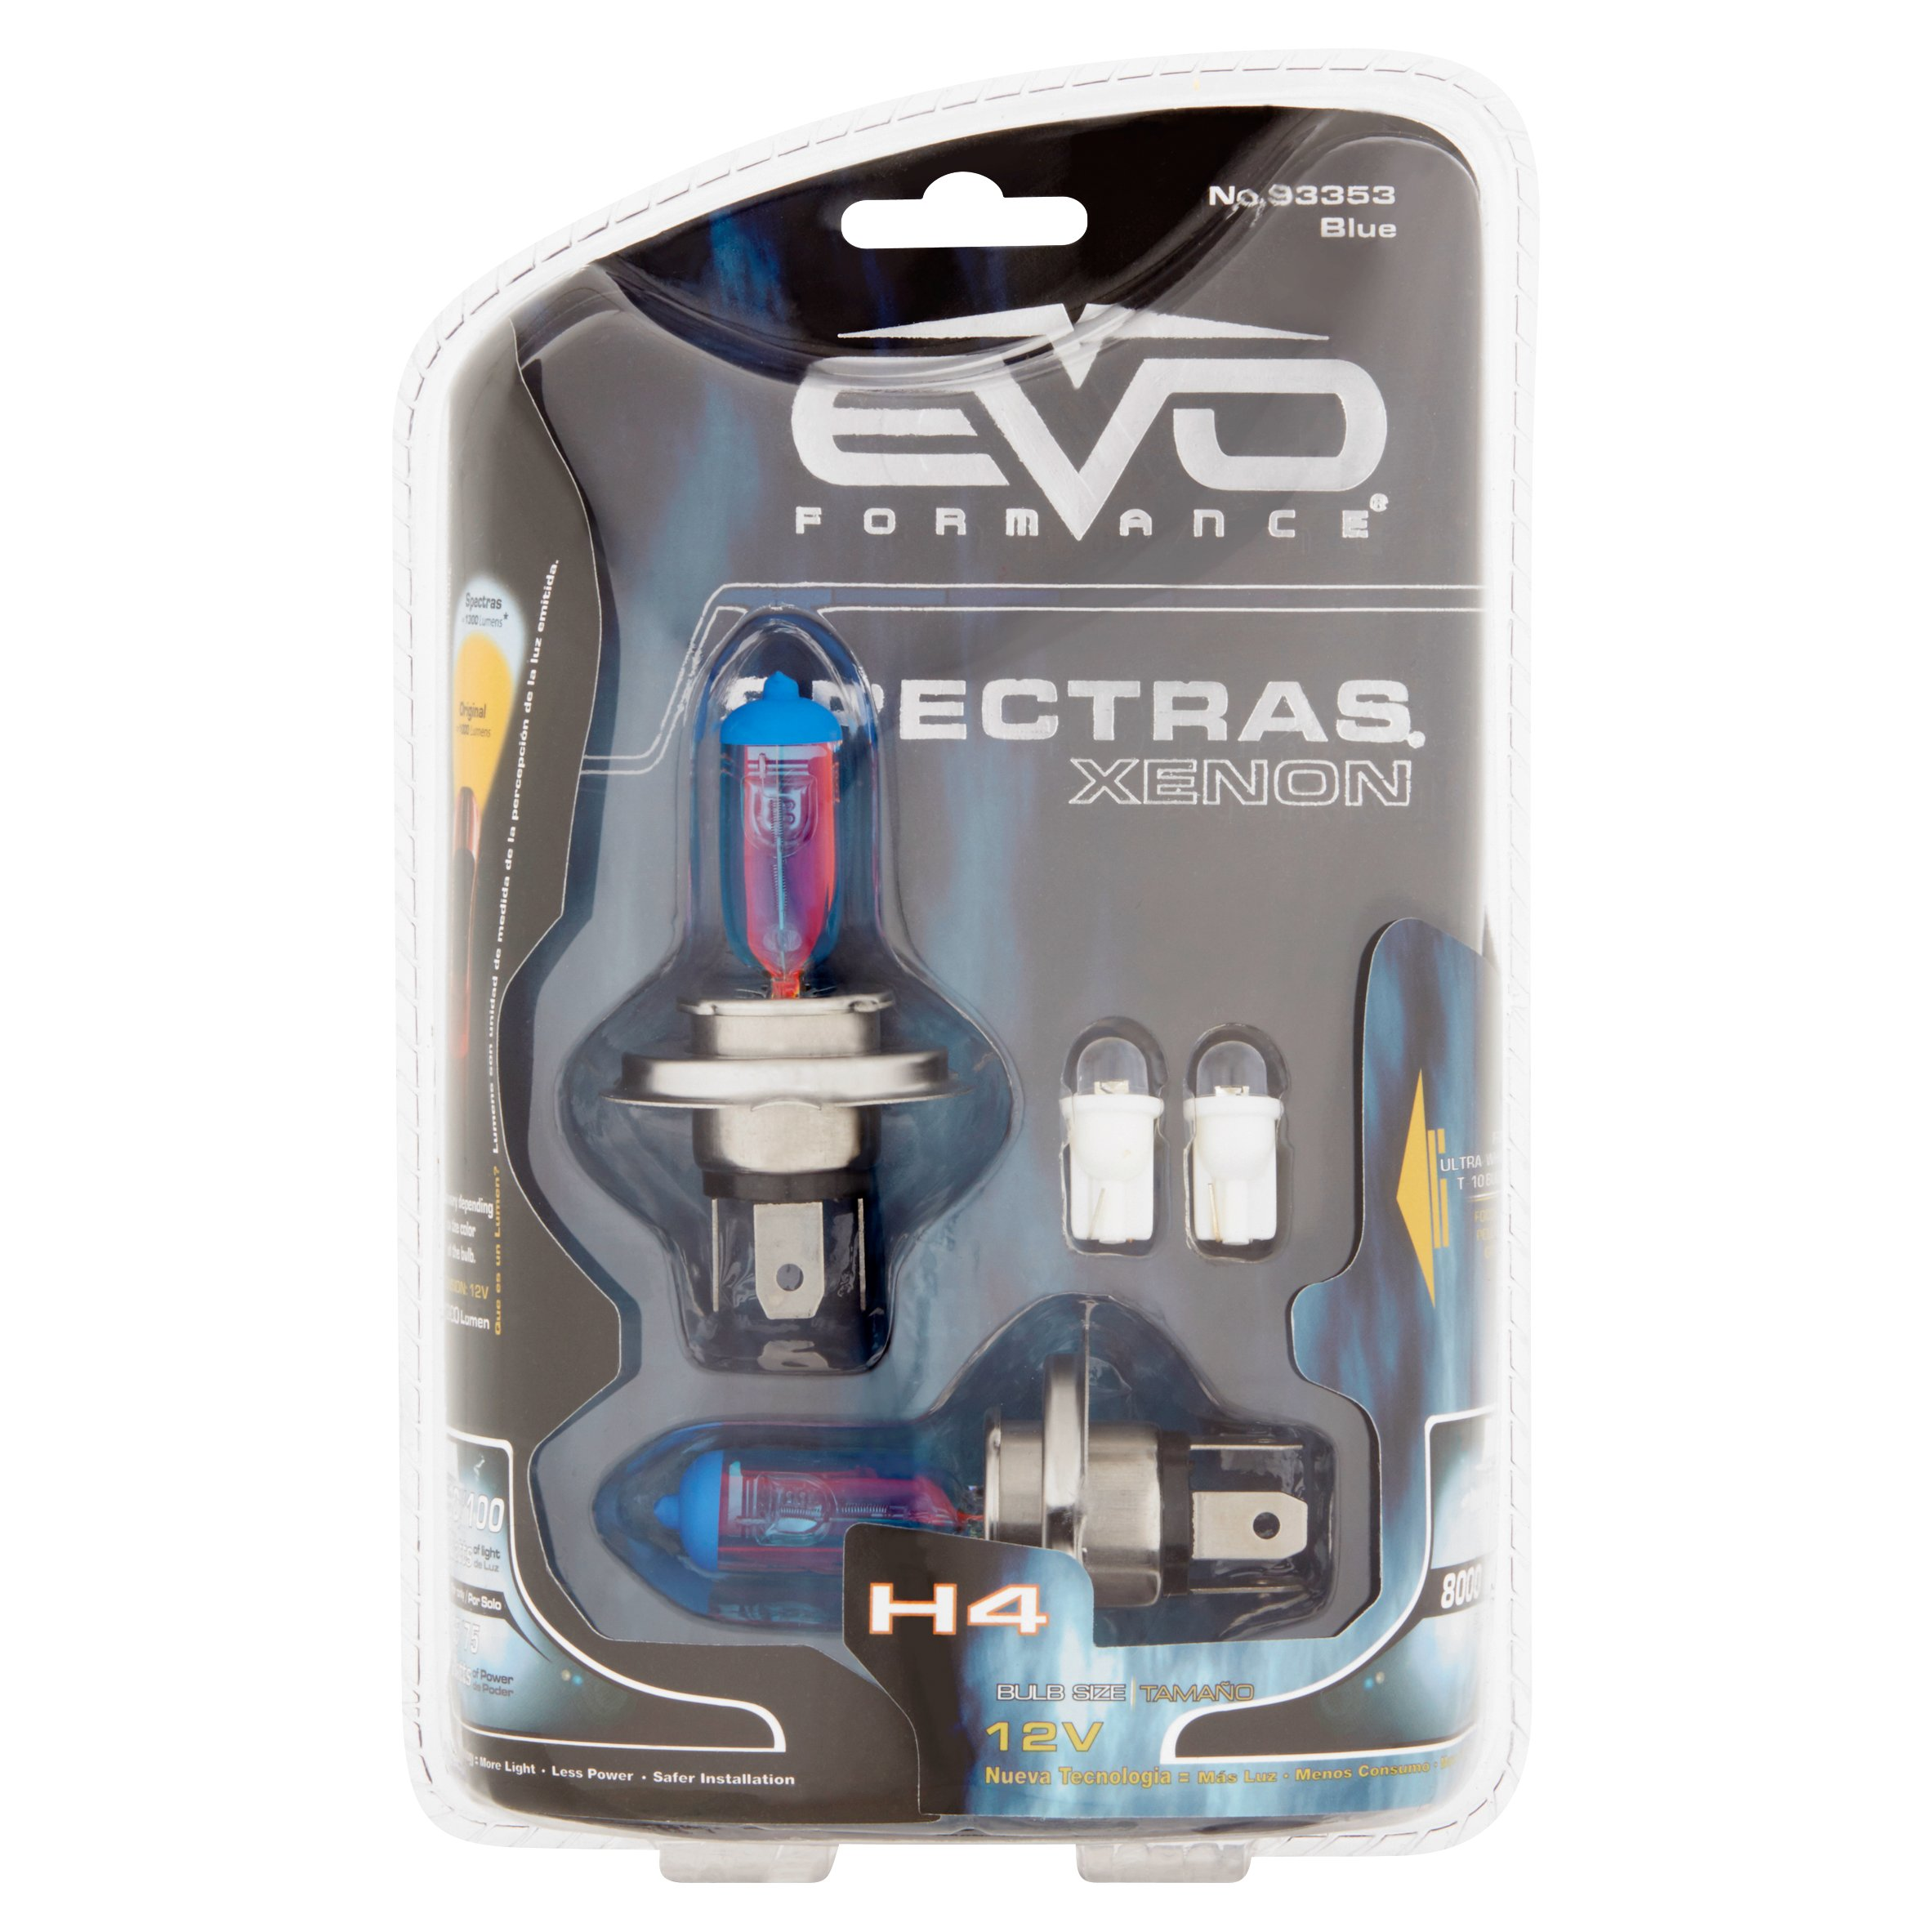 EVO Formance Spectras Xenon H4 12V Blue Bulbs, 2 count